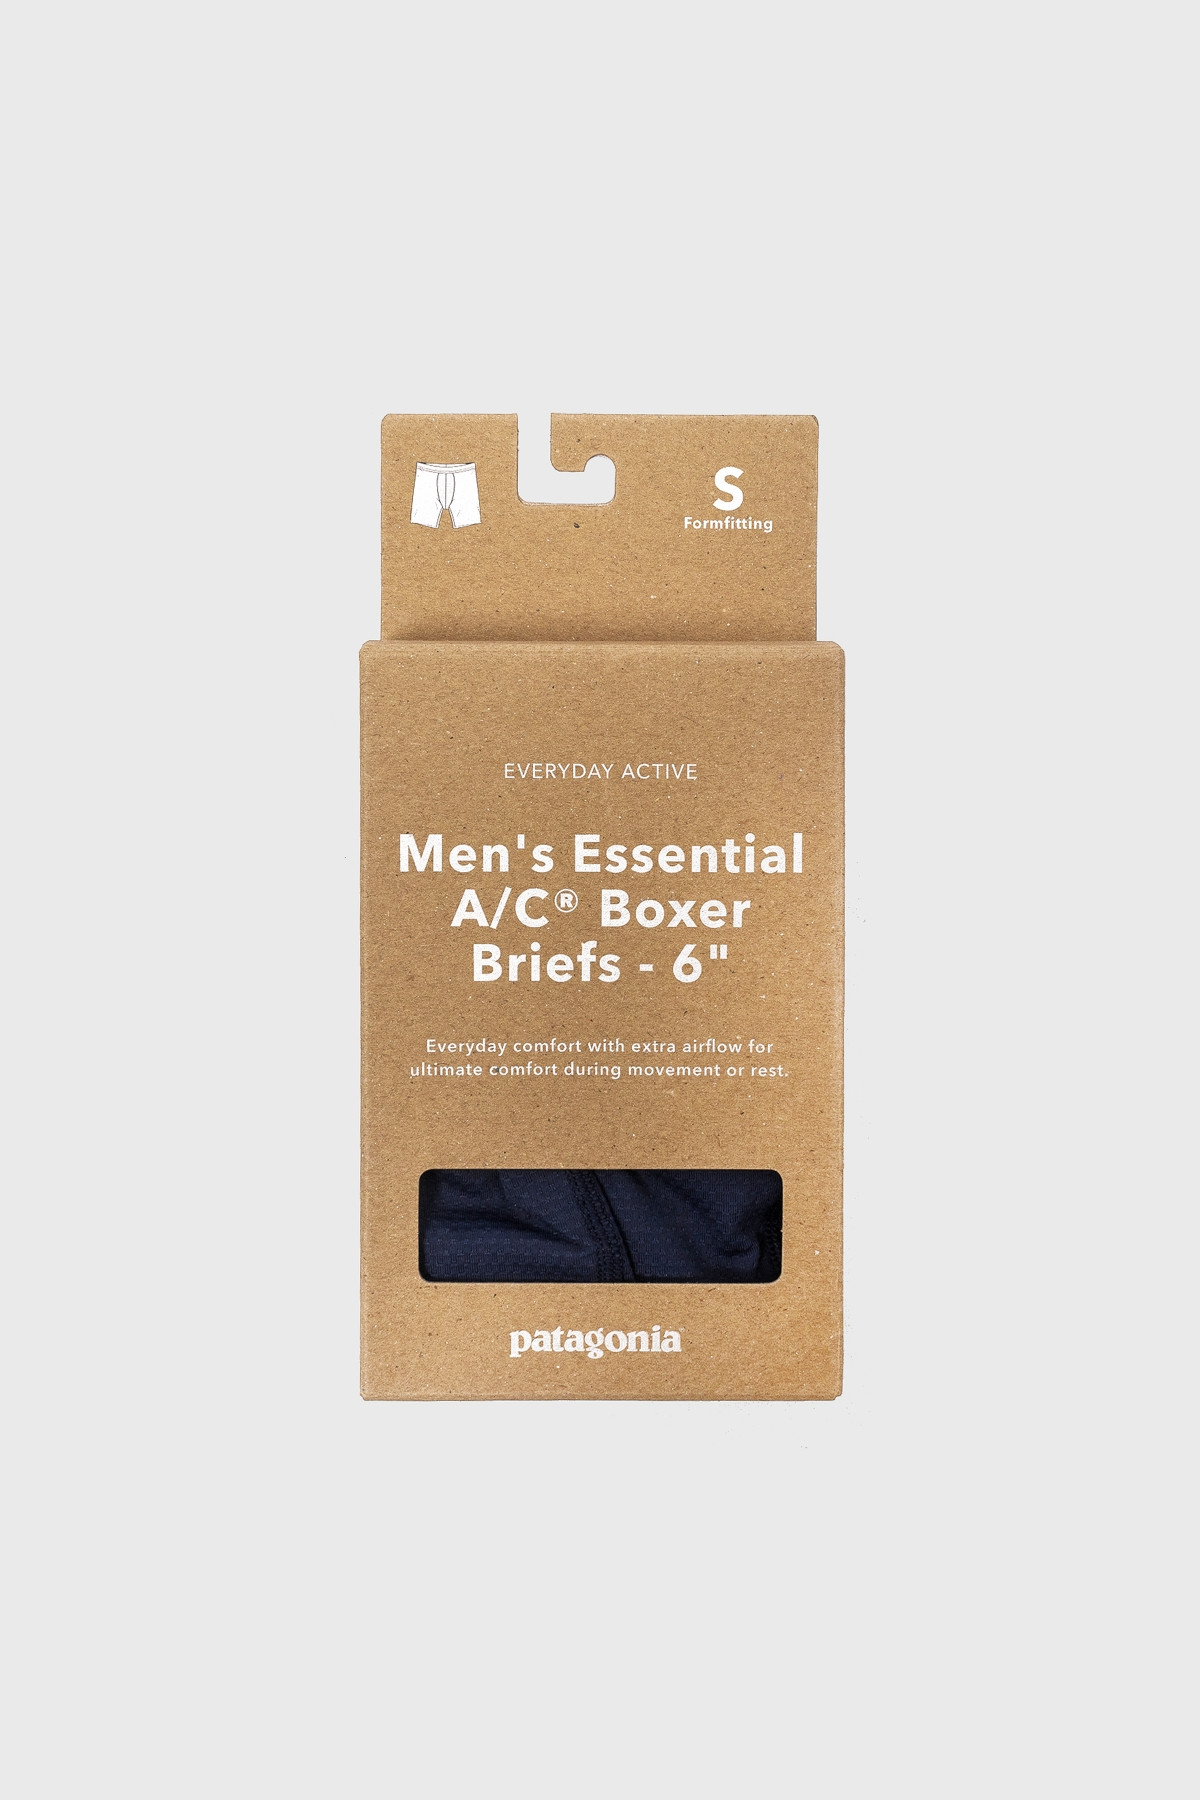 "patagonia - Men's Essential A/C® Boxer Briefs - 6"" - New navy"